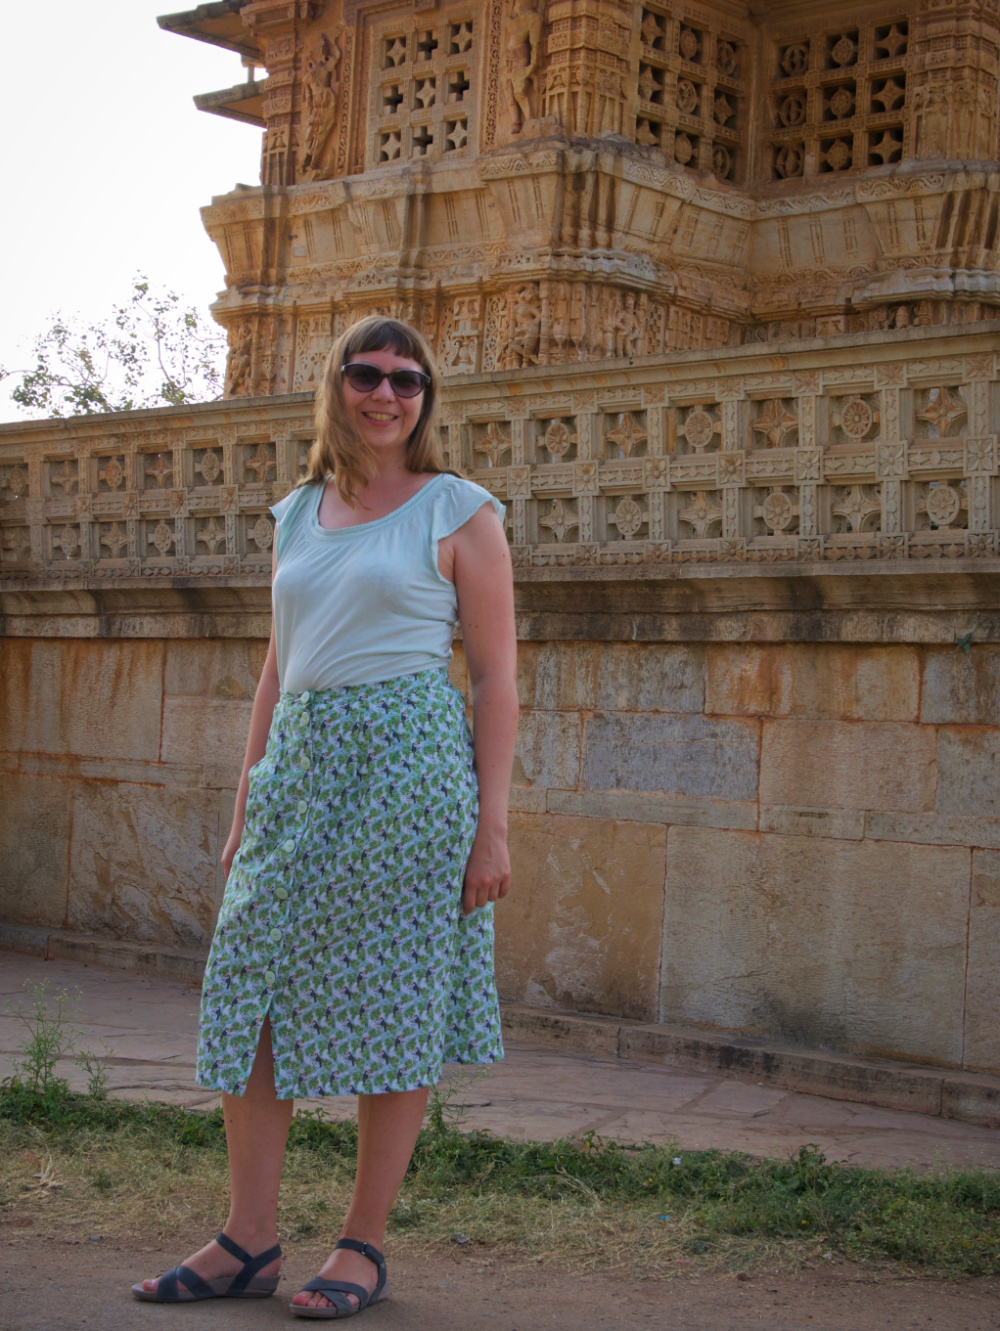 702-India-Chittorgarh